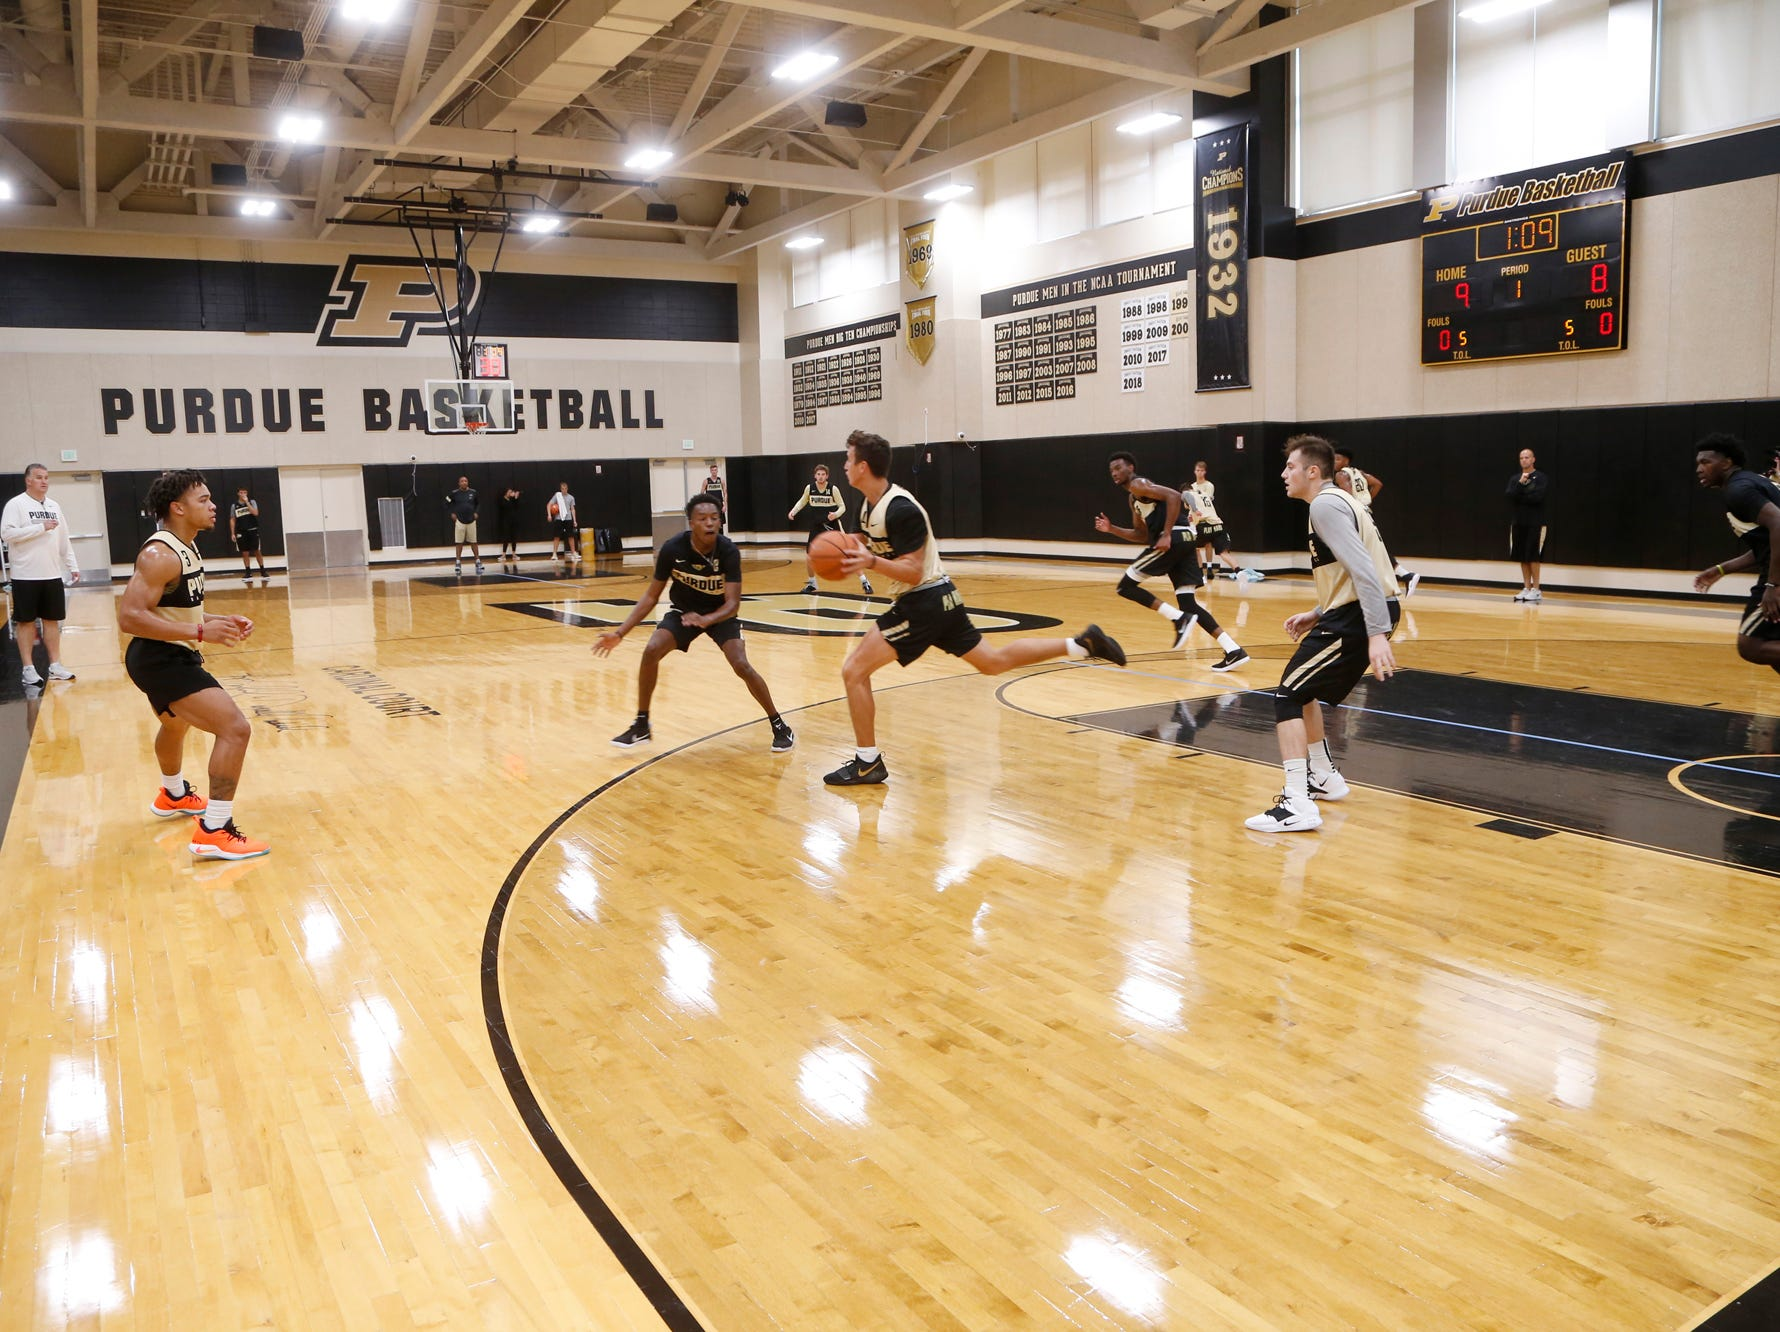 Players work for a shot during the first official practice of the season for Purdue men's basketball Tuesday, September 25, 2018, at Cardinal Court in Mackey Arena.